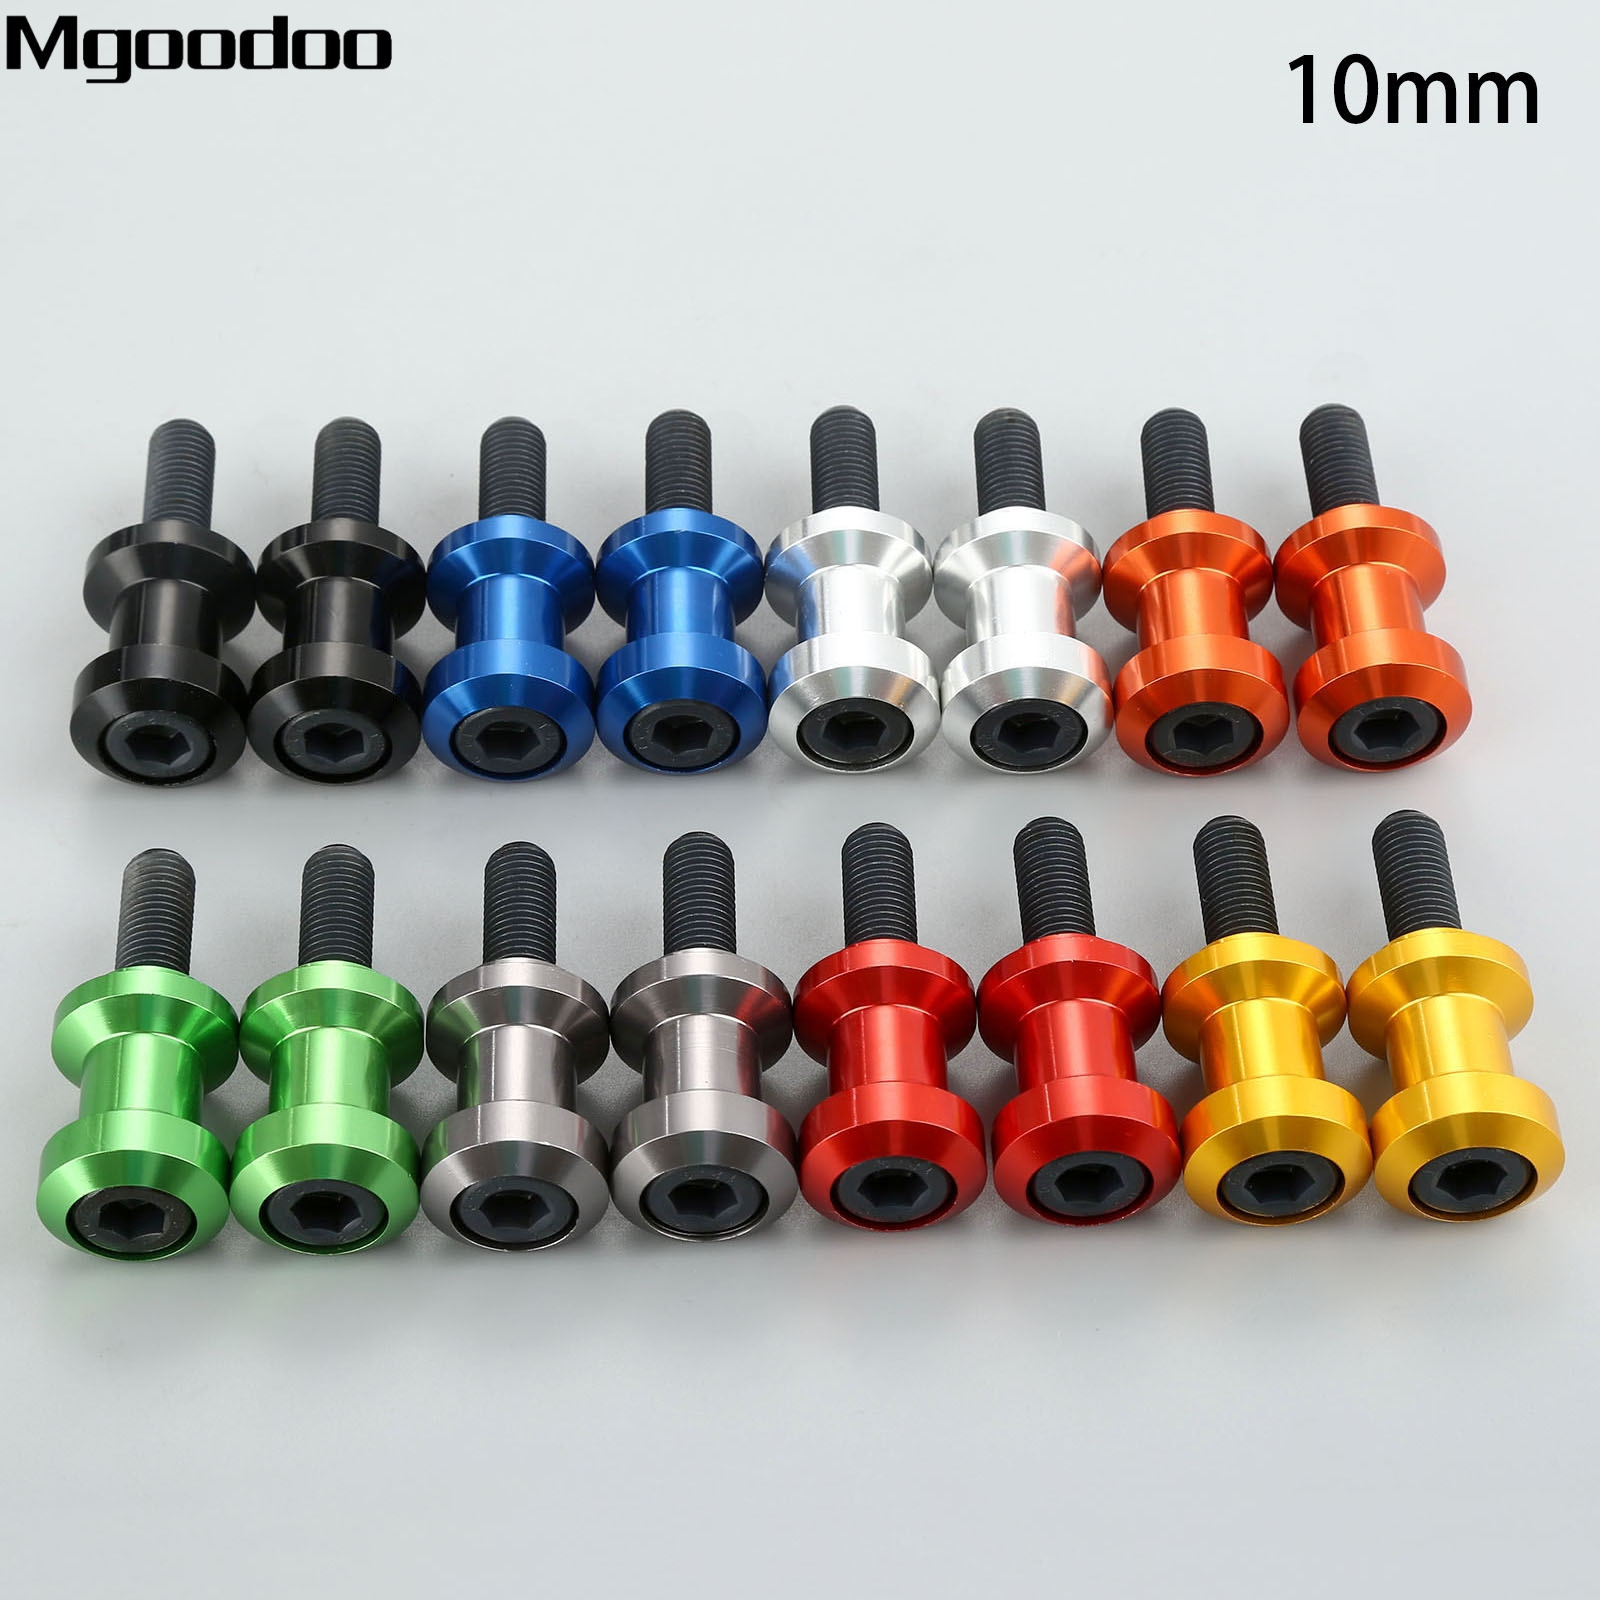 Mgoodoo CNC Aluminium 10mm Motorcycle Swingarm Spools Sliders For Yamaha YZF750/1000 FZR400/600/1000 KTM 690 990 Duke 1190 RC8 new men winter boots plush genuine leather men cowboy waterproof ankle shoes men snow boots warm waterproof rubber men boots